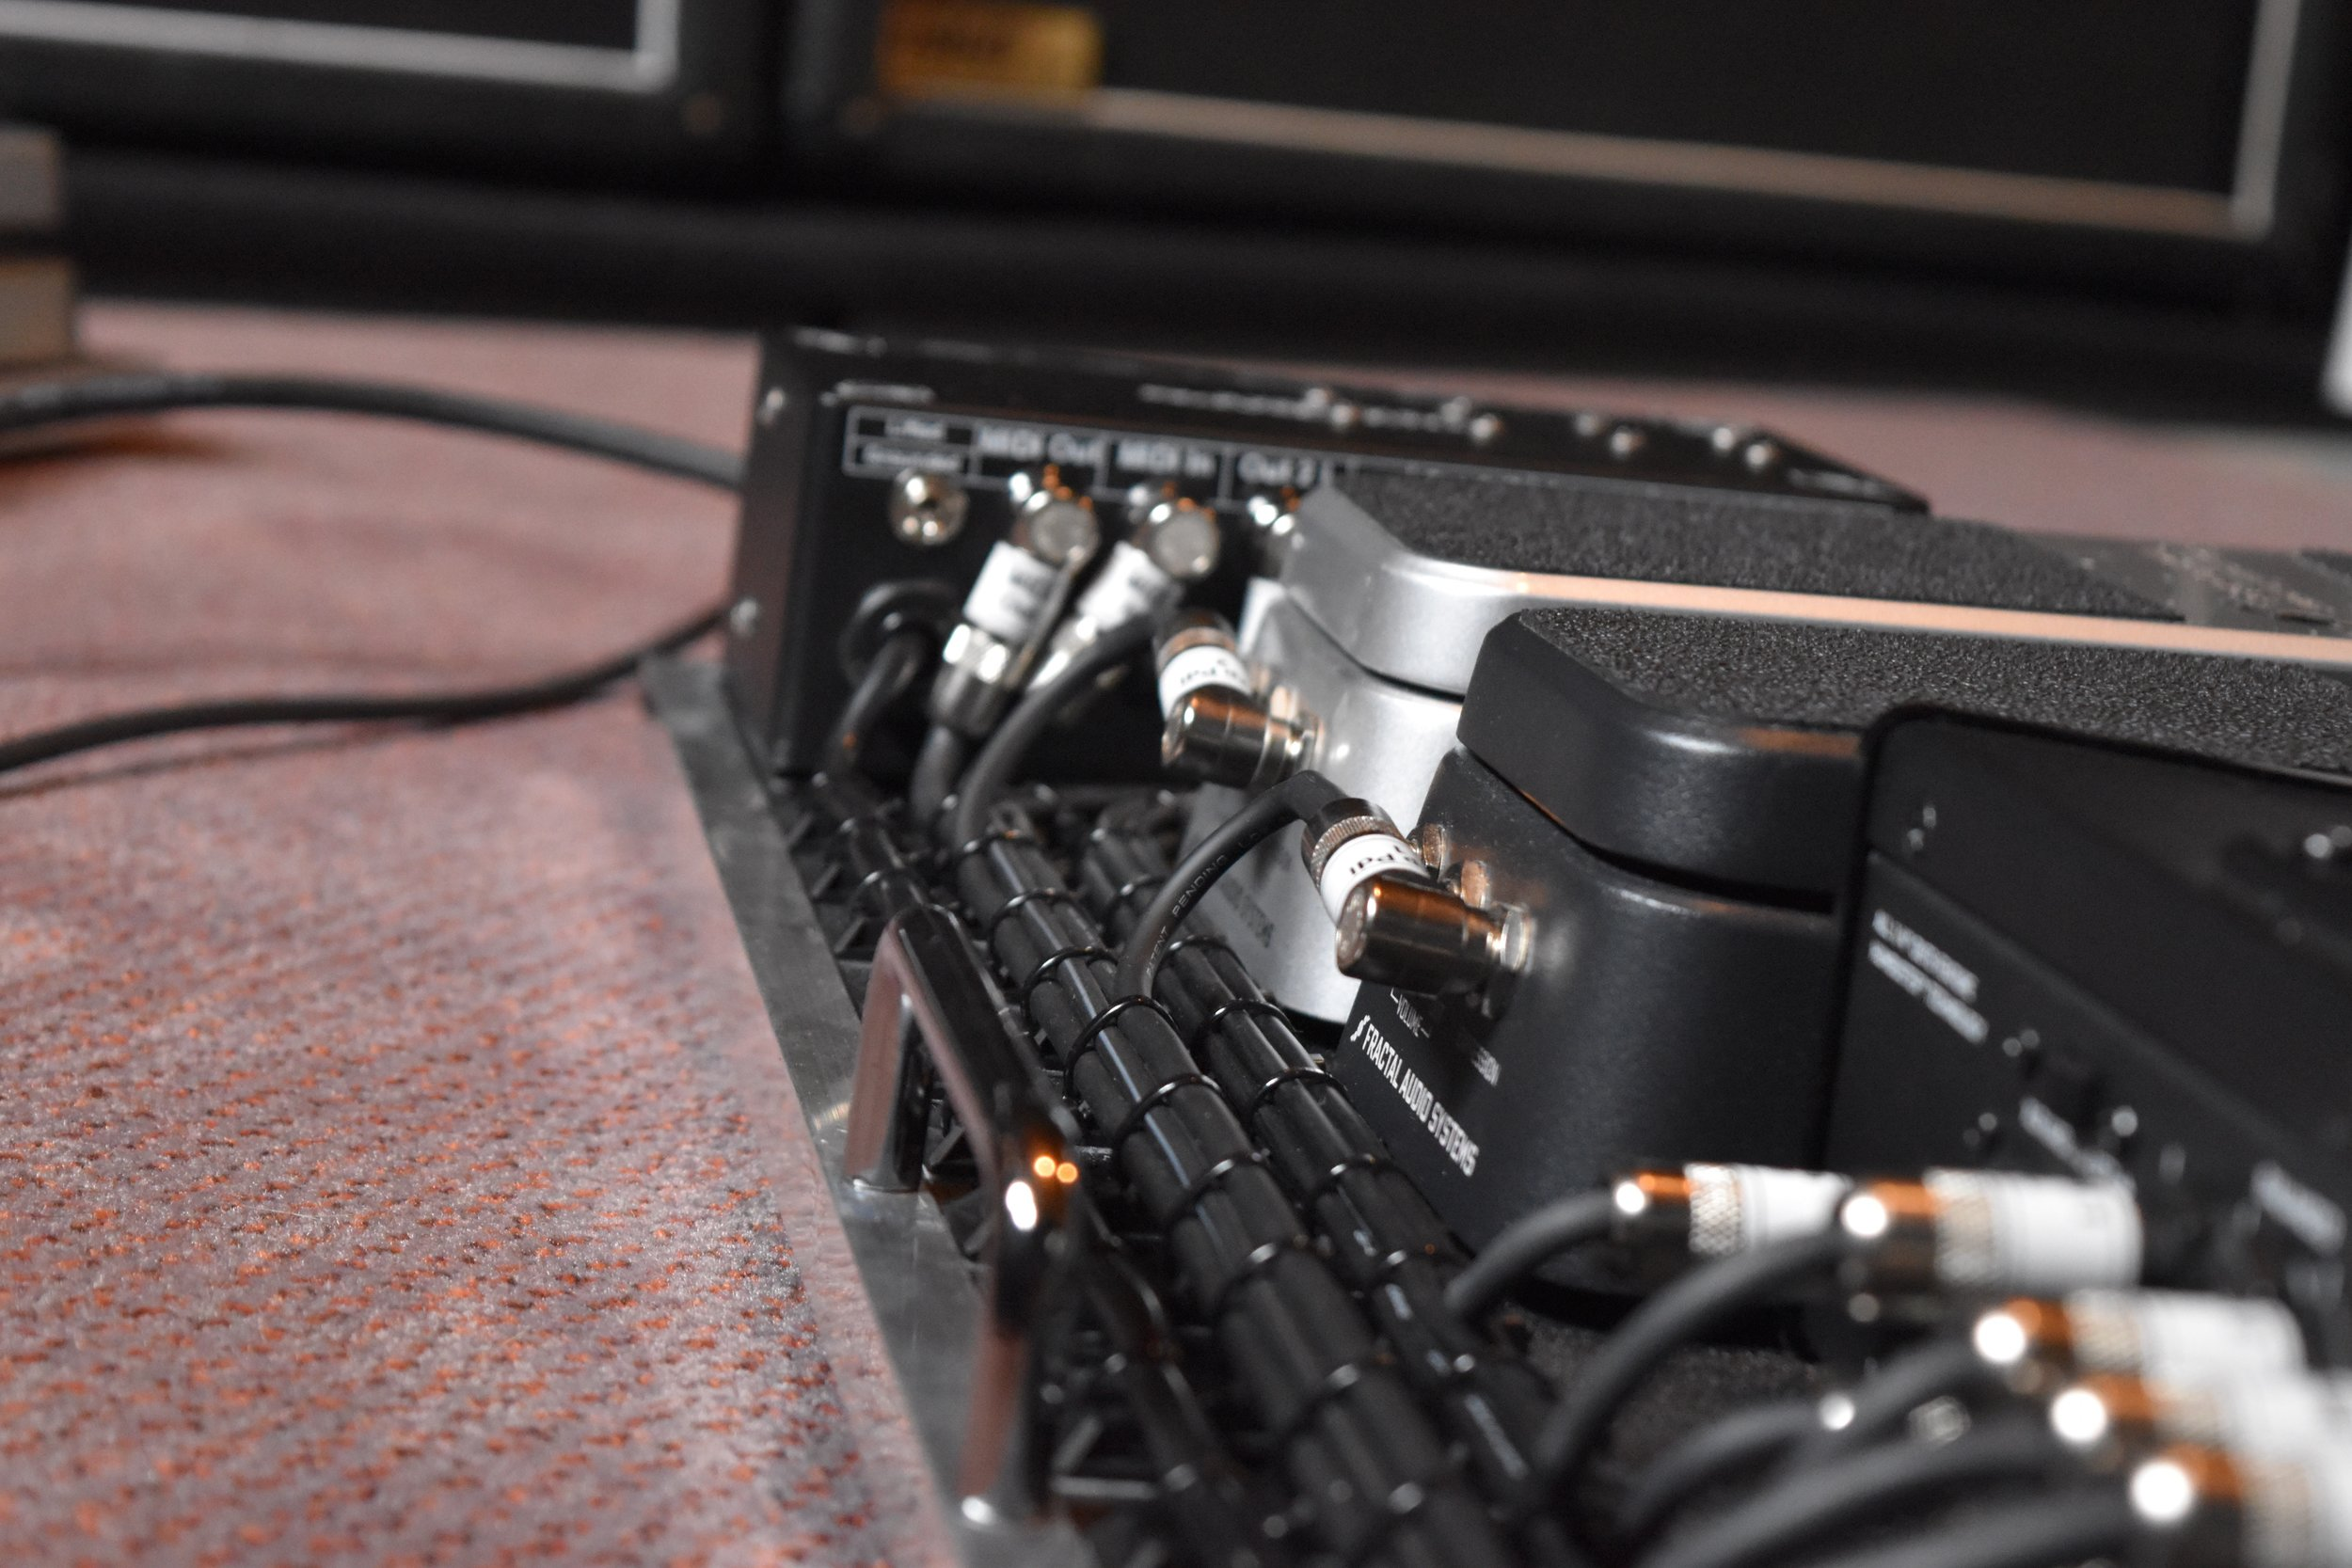 Mark Day Fractal Audio AX8 Pedalboard System 07.jpg